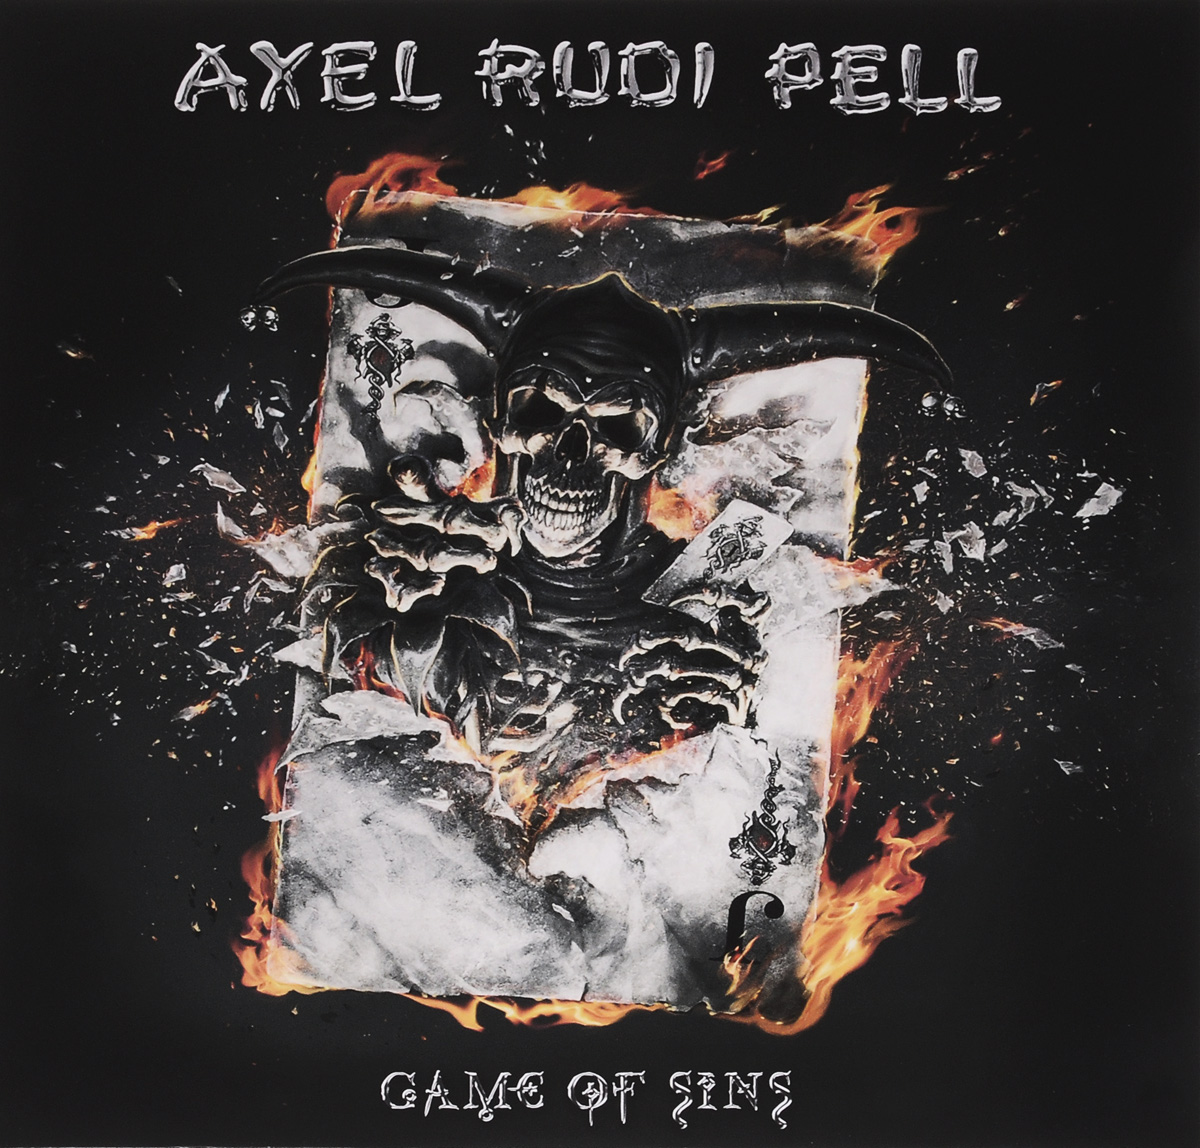 Аксель Руди Пелл Axel Rudi Pell. Game Of Sins (2 LP + CD) рубашка fore axel